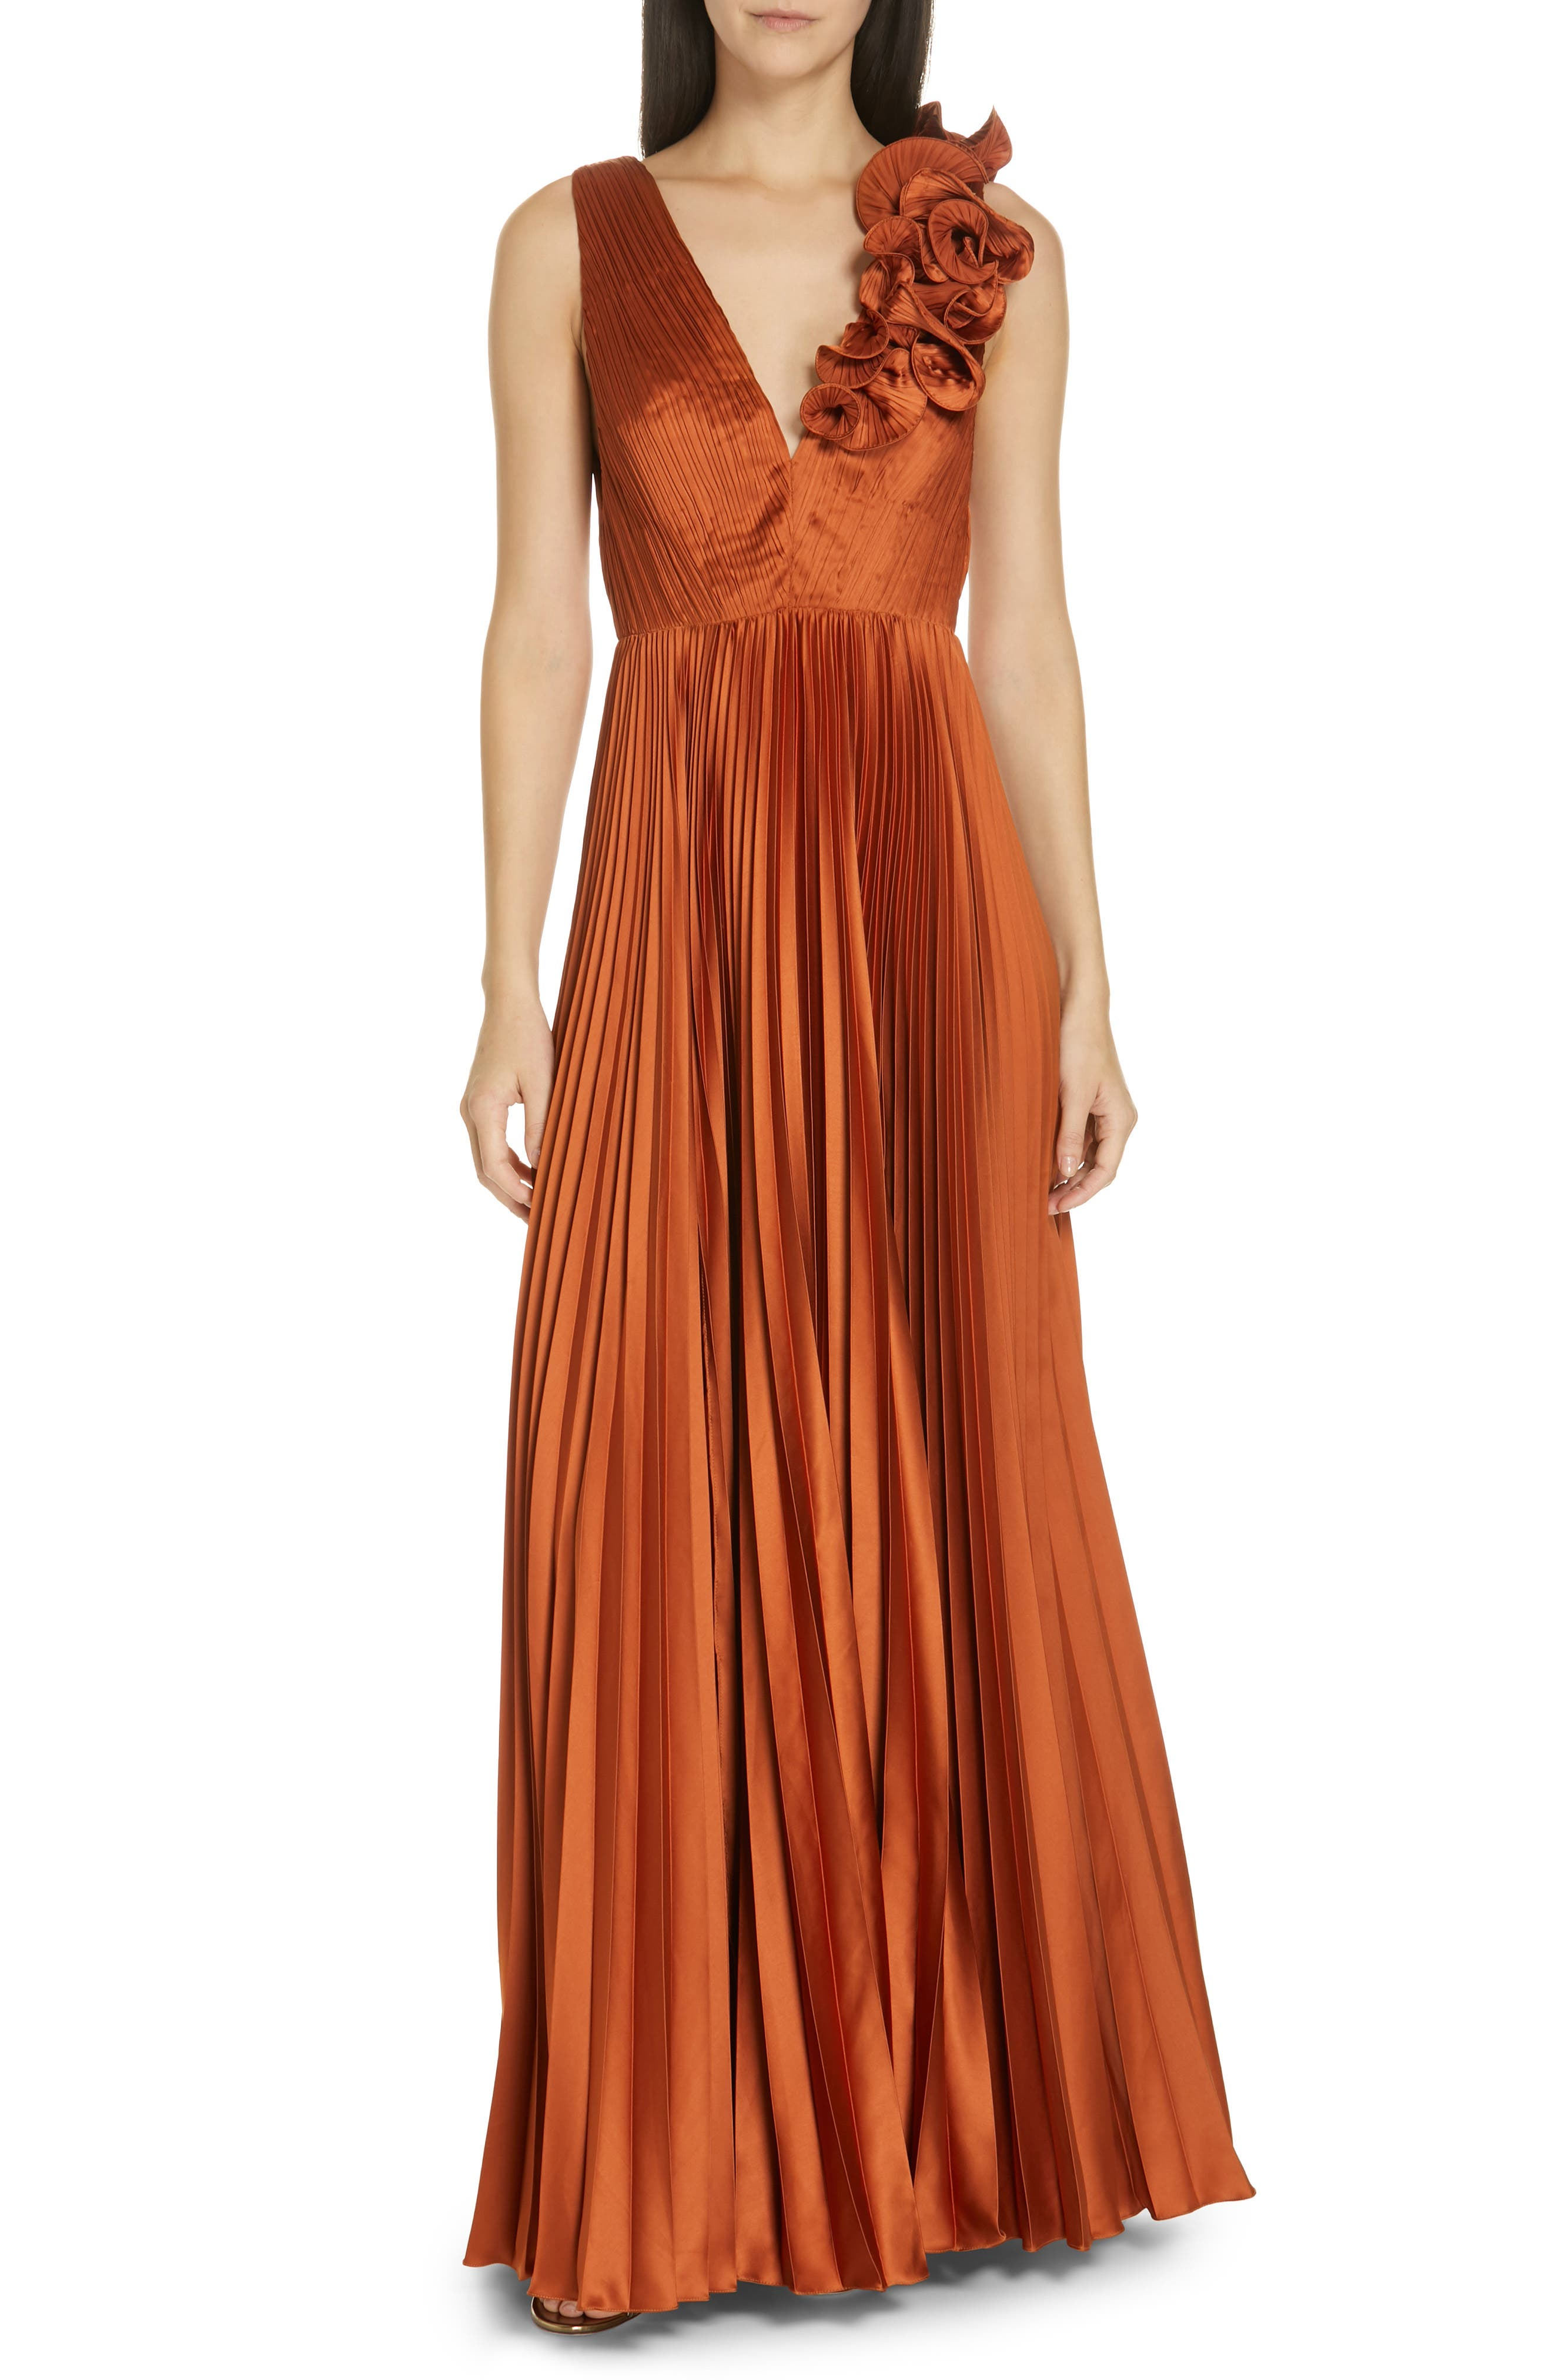 Amur Aviva Pleated Satin Maxi Dress, Metallic